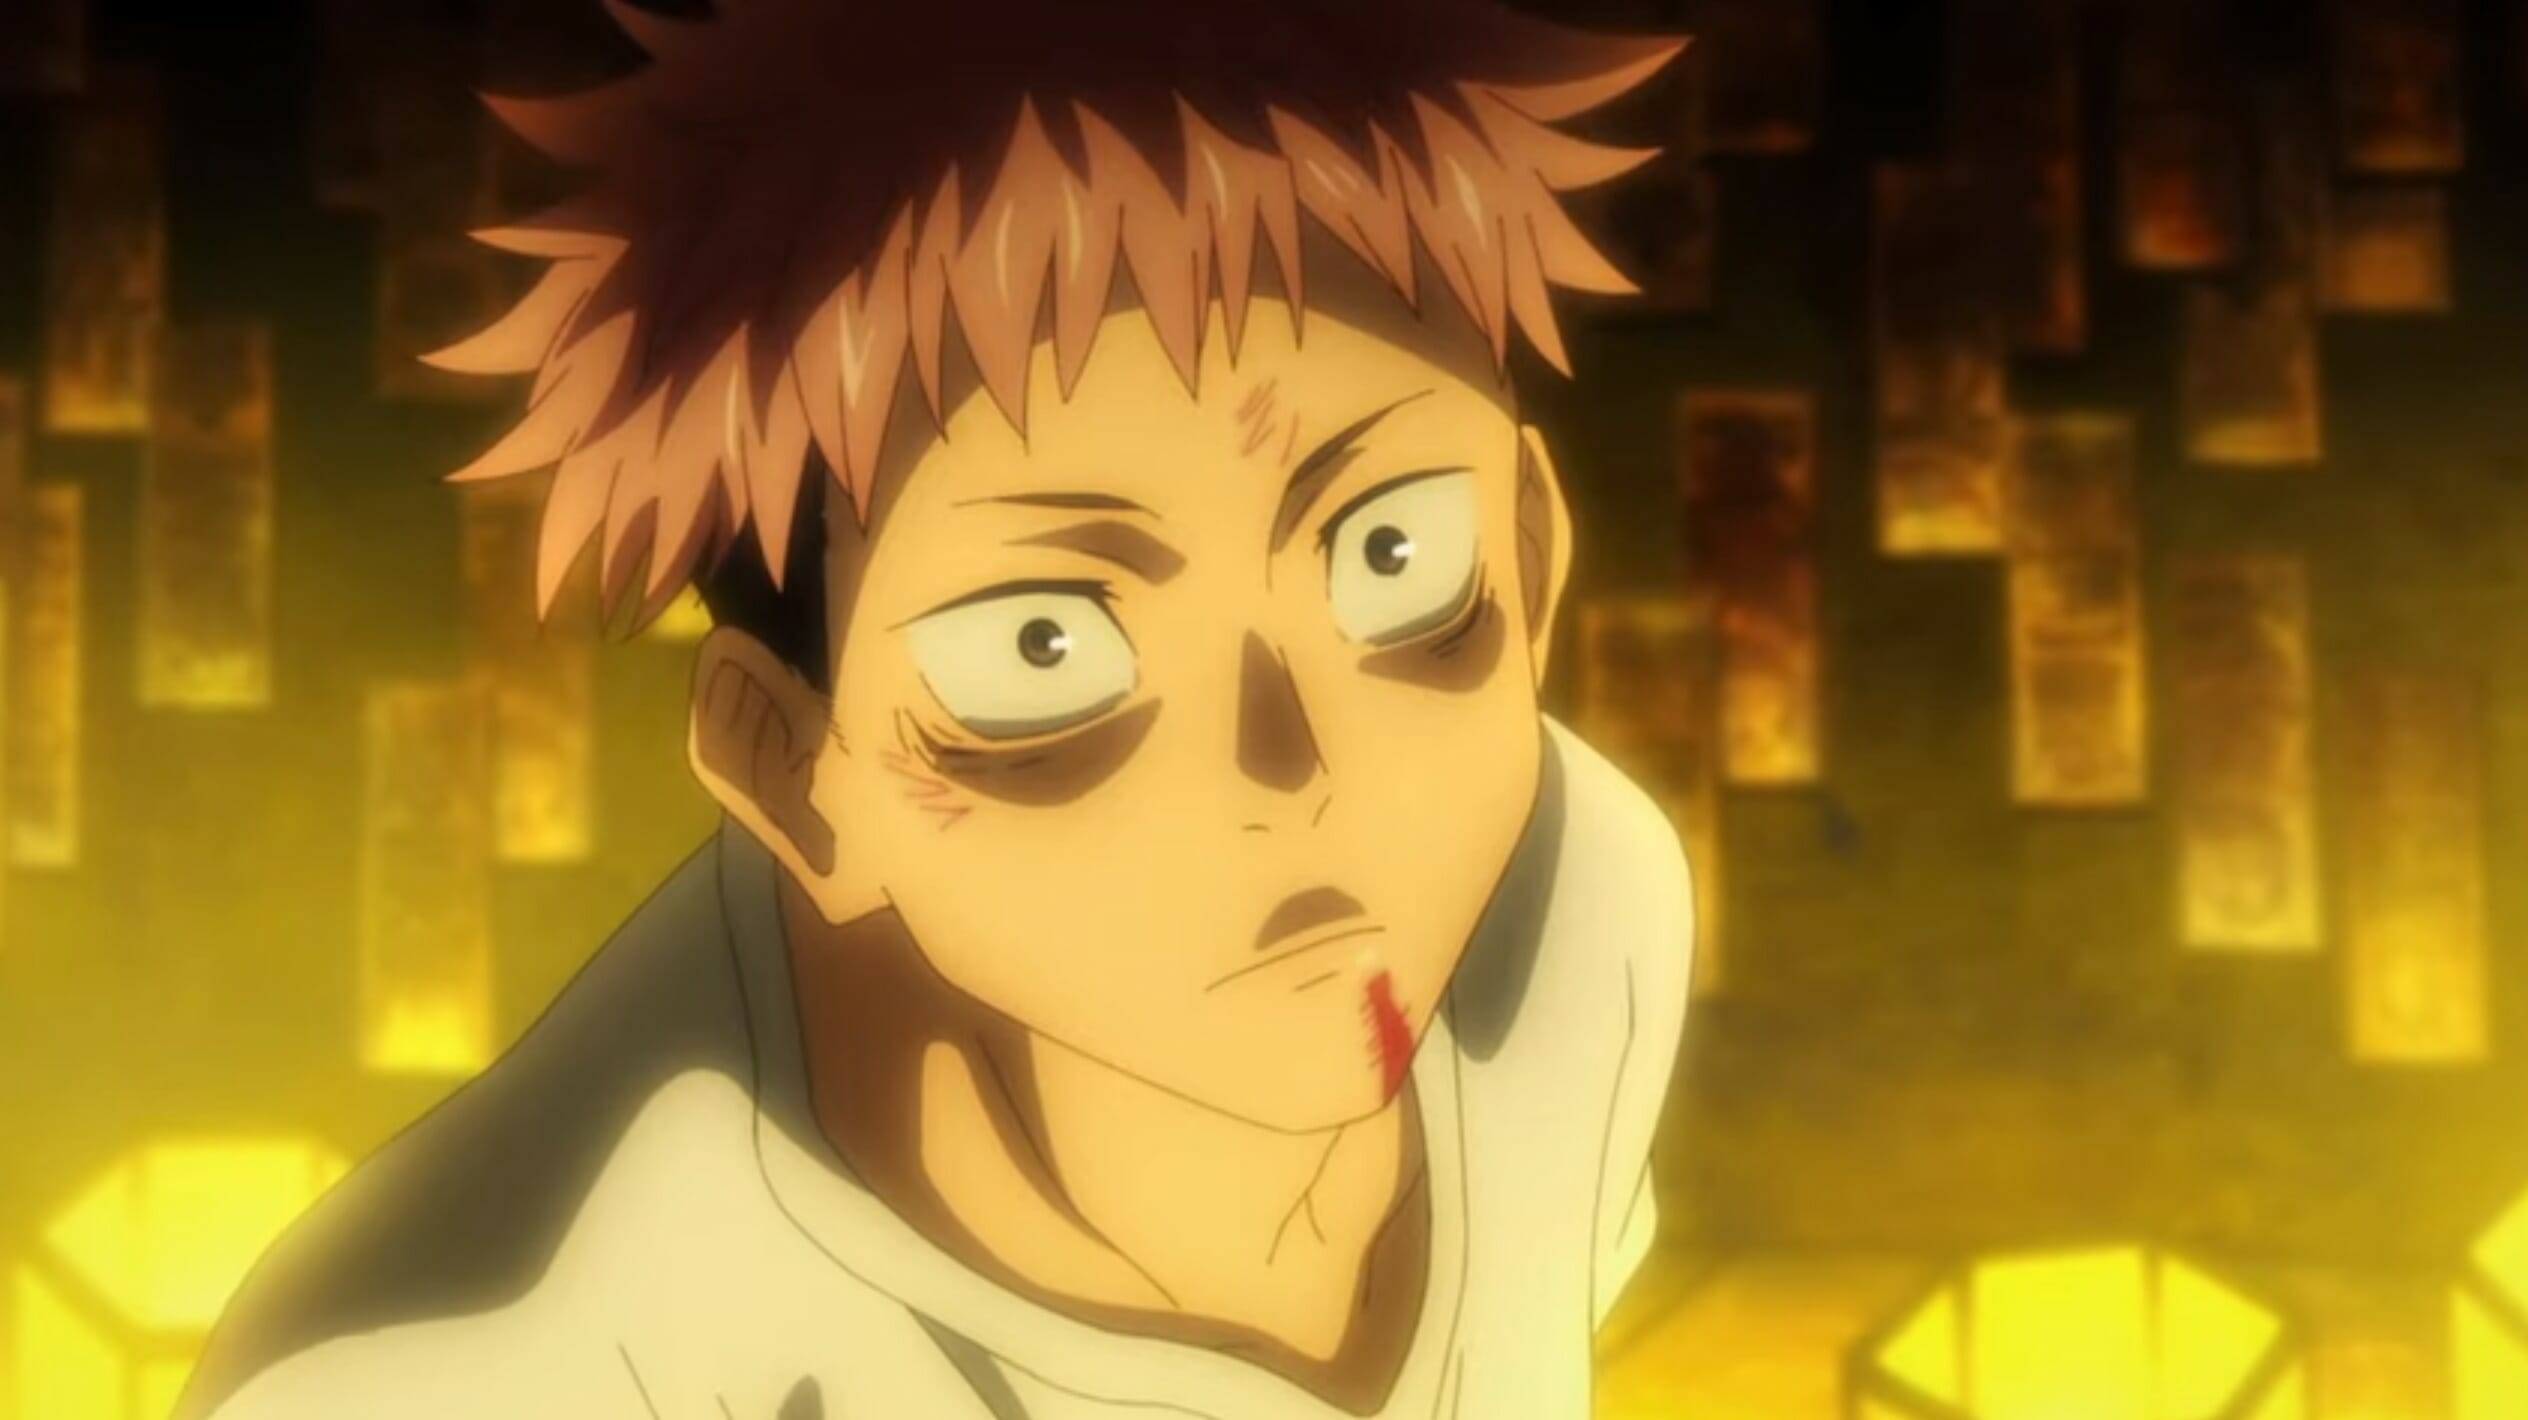 Curse anime Jujutsu Kaisen gets a new trailer